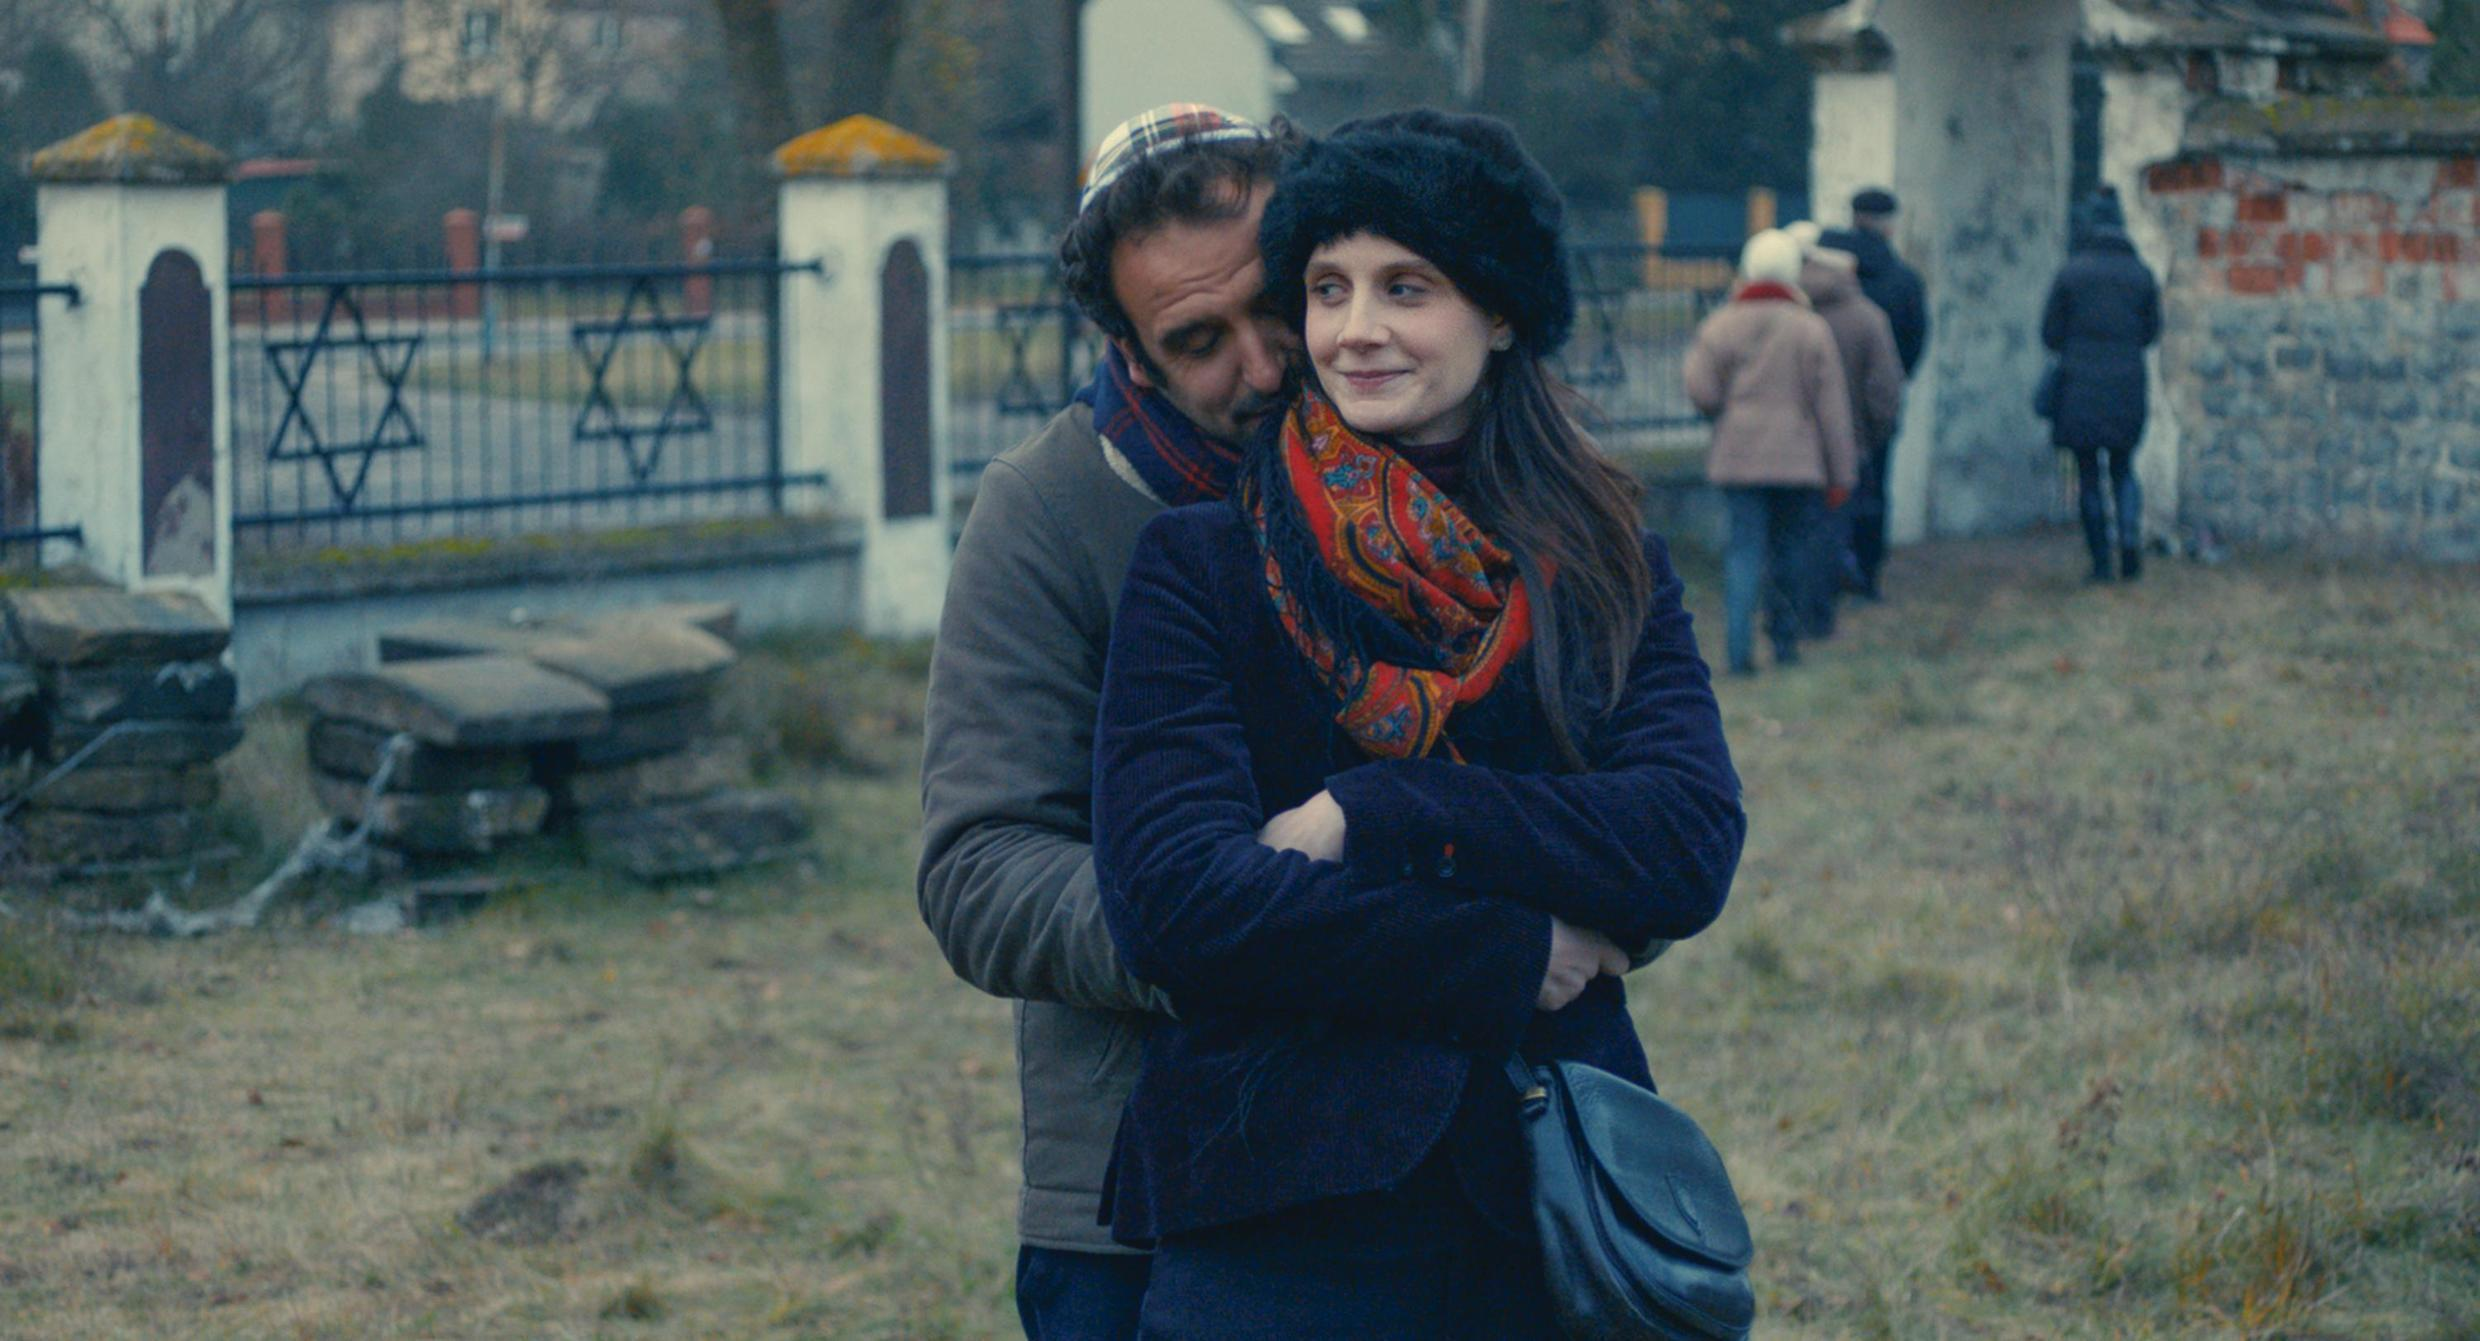 Anna (Judith Chemla) and Adam (Arthur Igual) in My Polish Honeymoon in love but at odds over roots issues